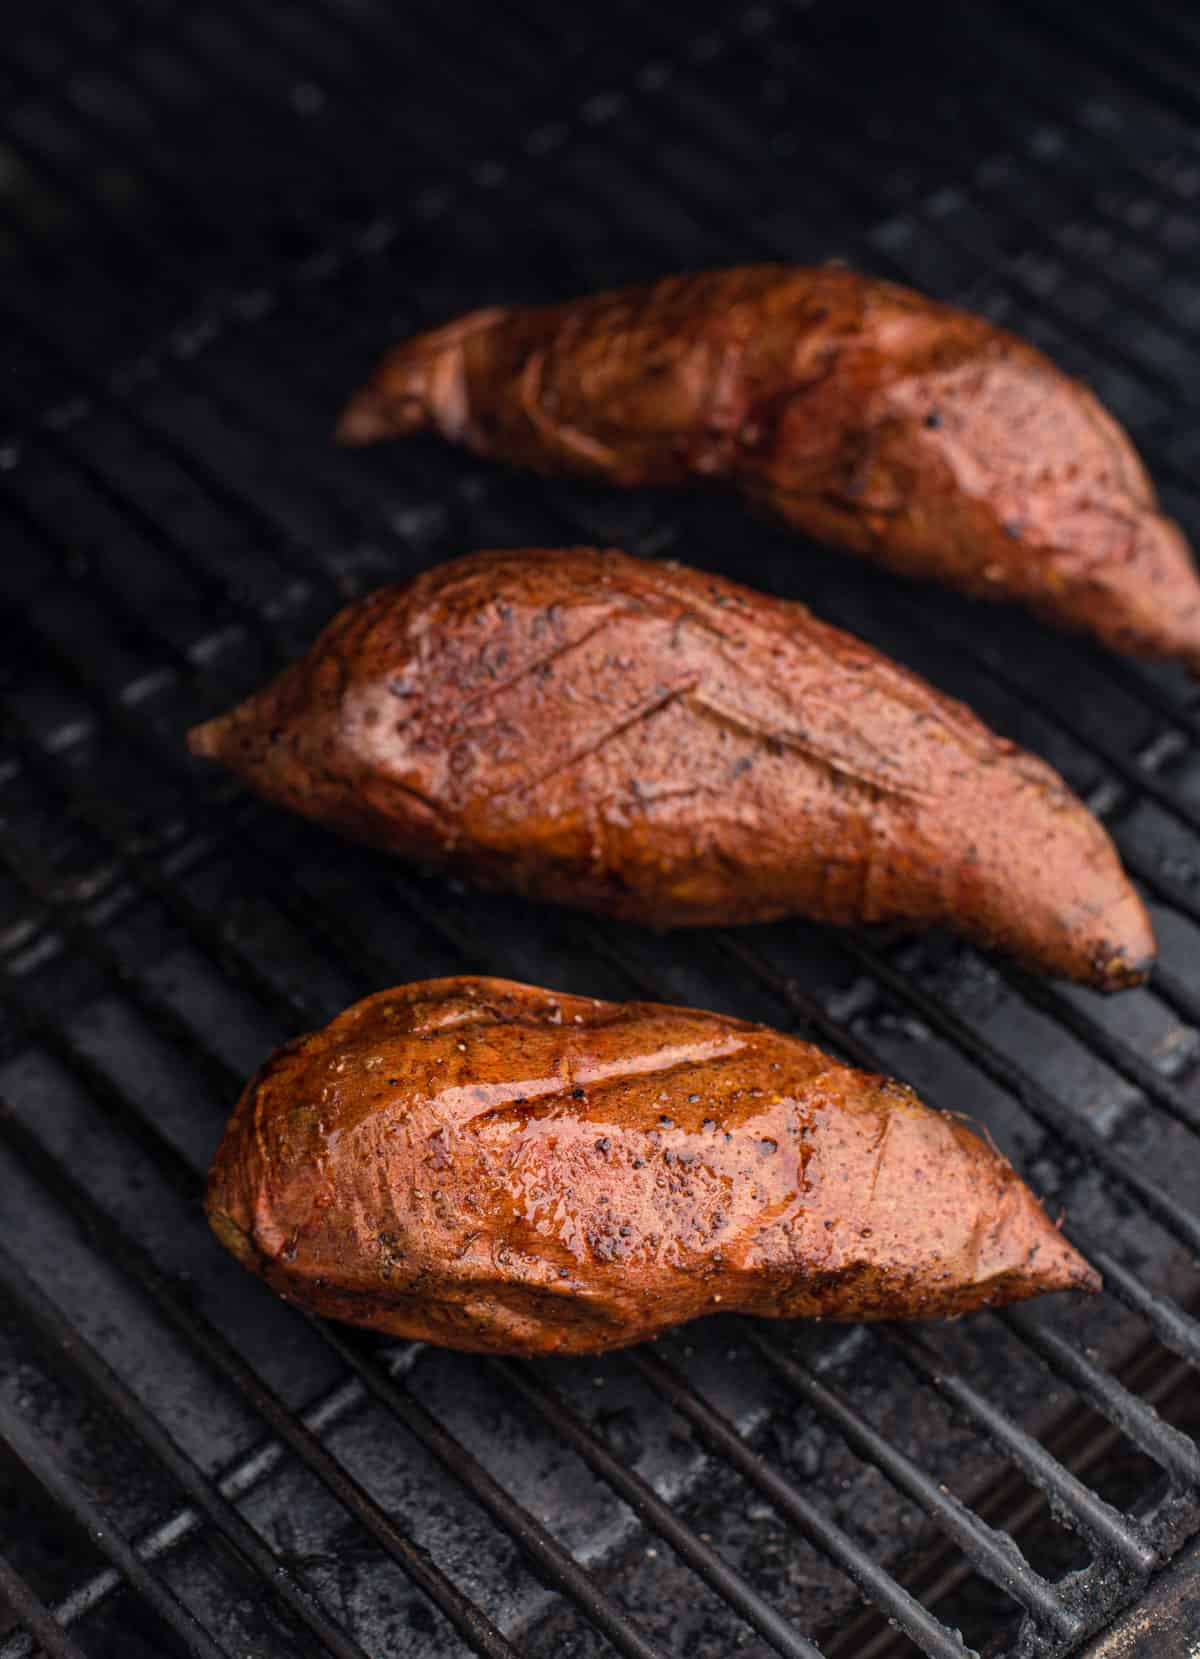 Sweet potatoes baking on the grill